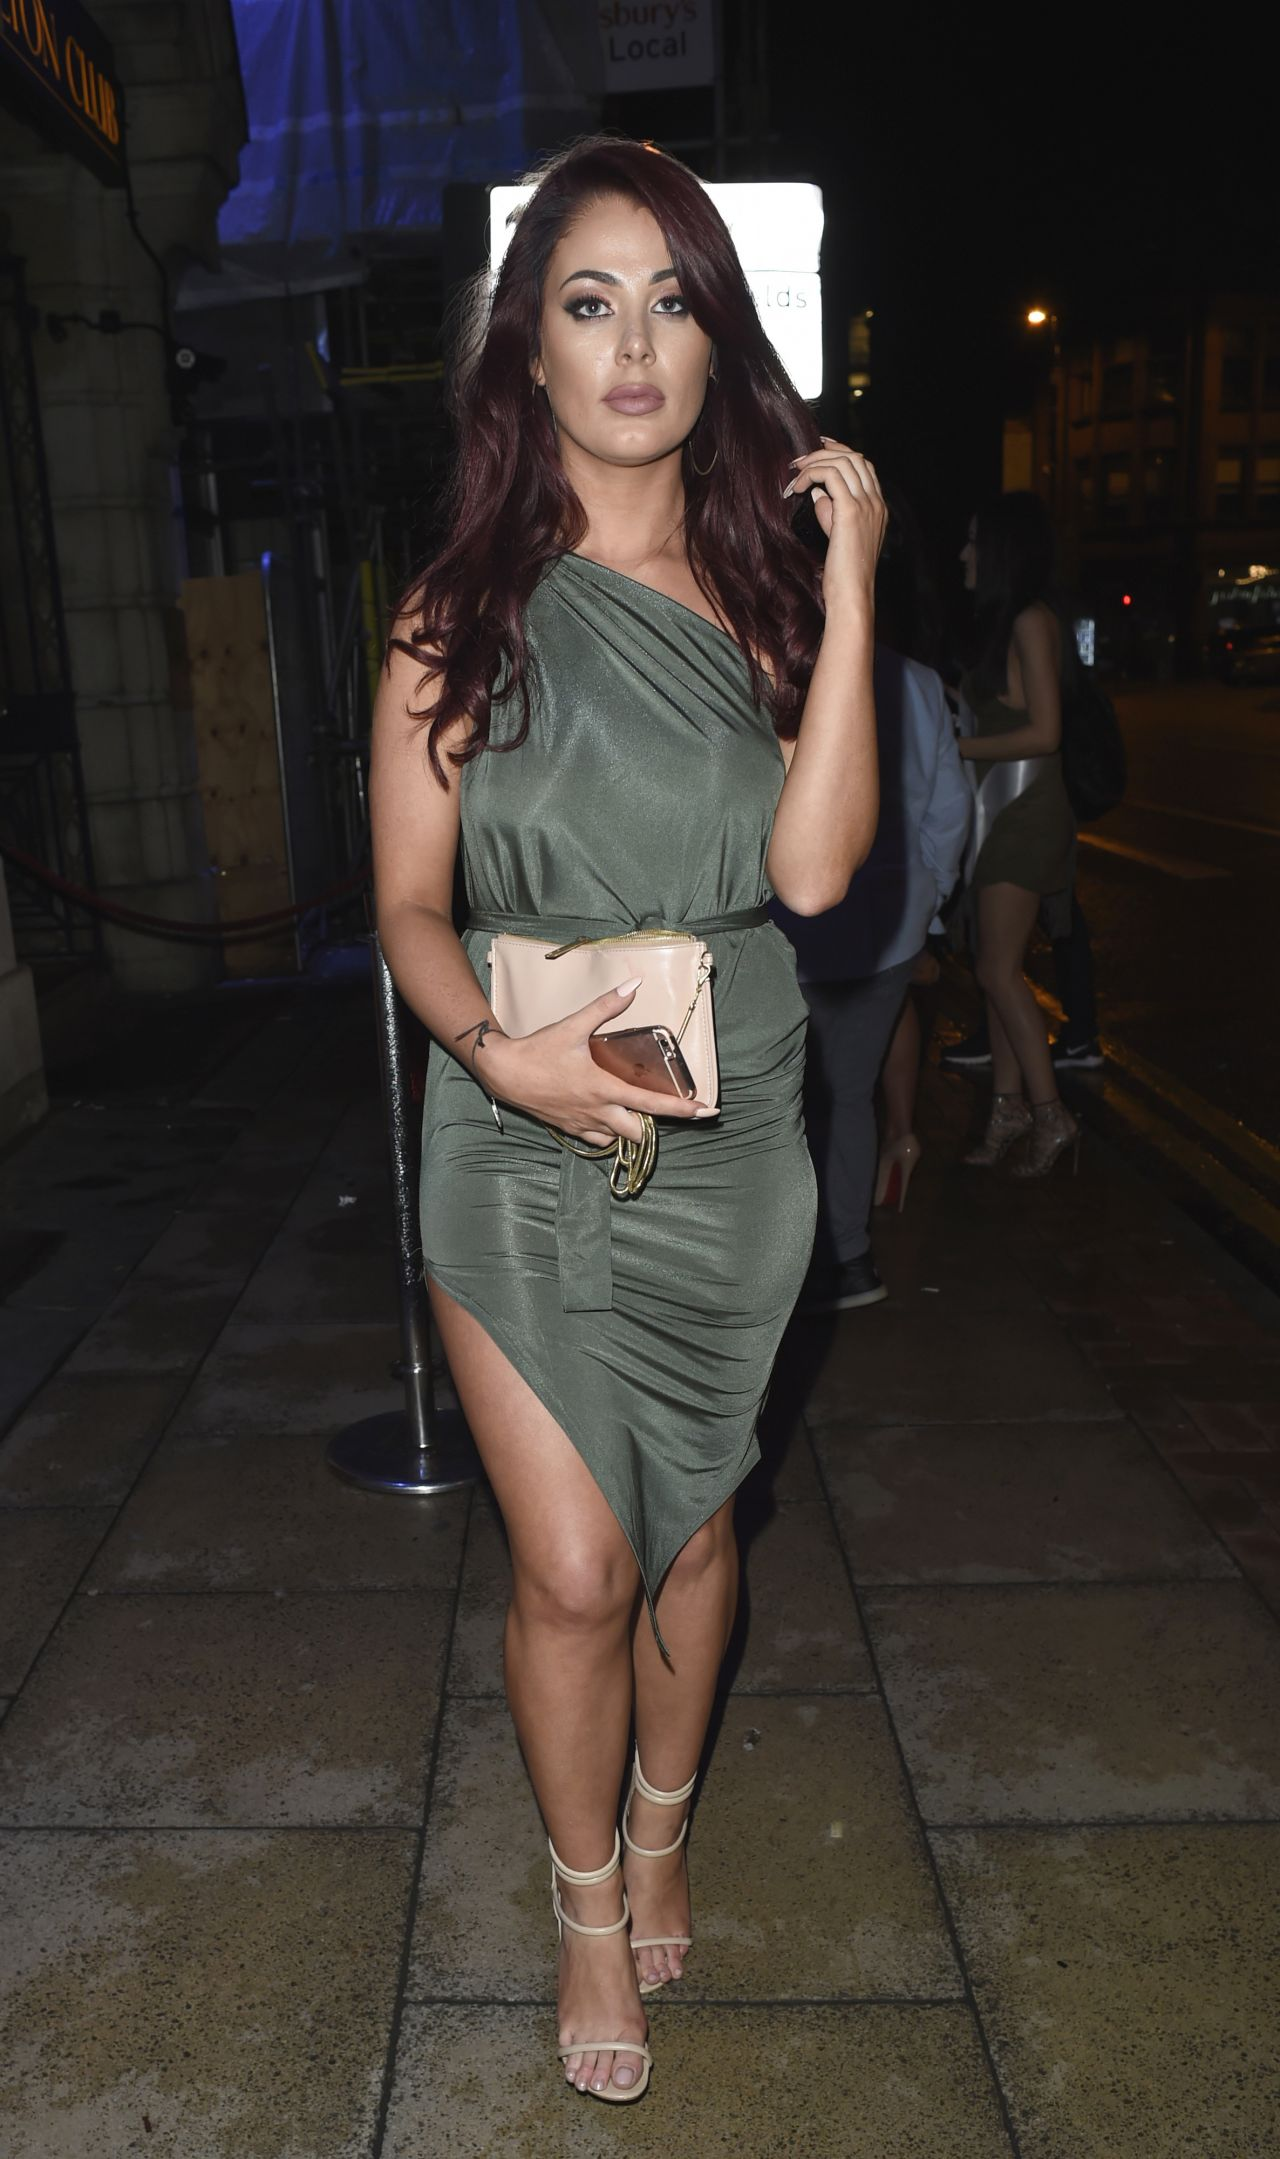 Charlotte Dawson Pics Without Underwear | The Fappening - News